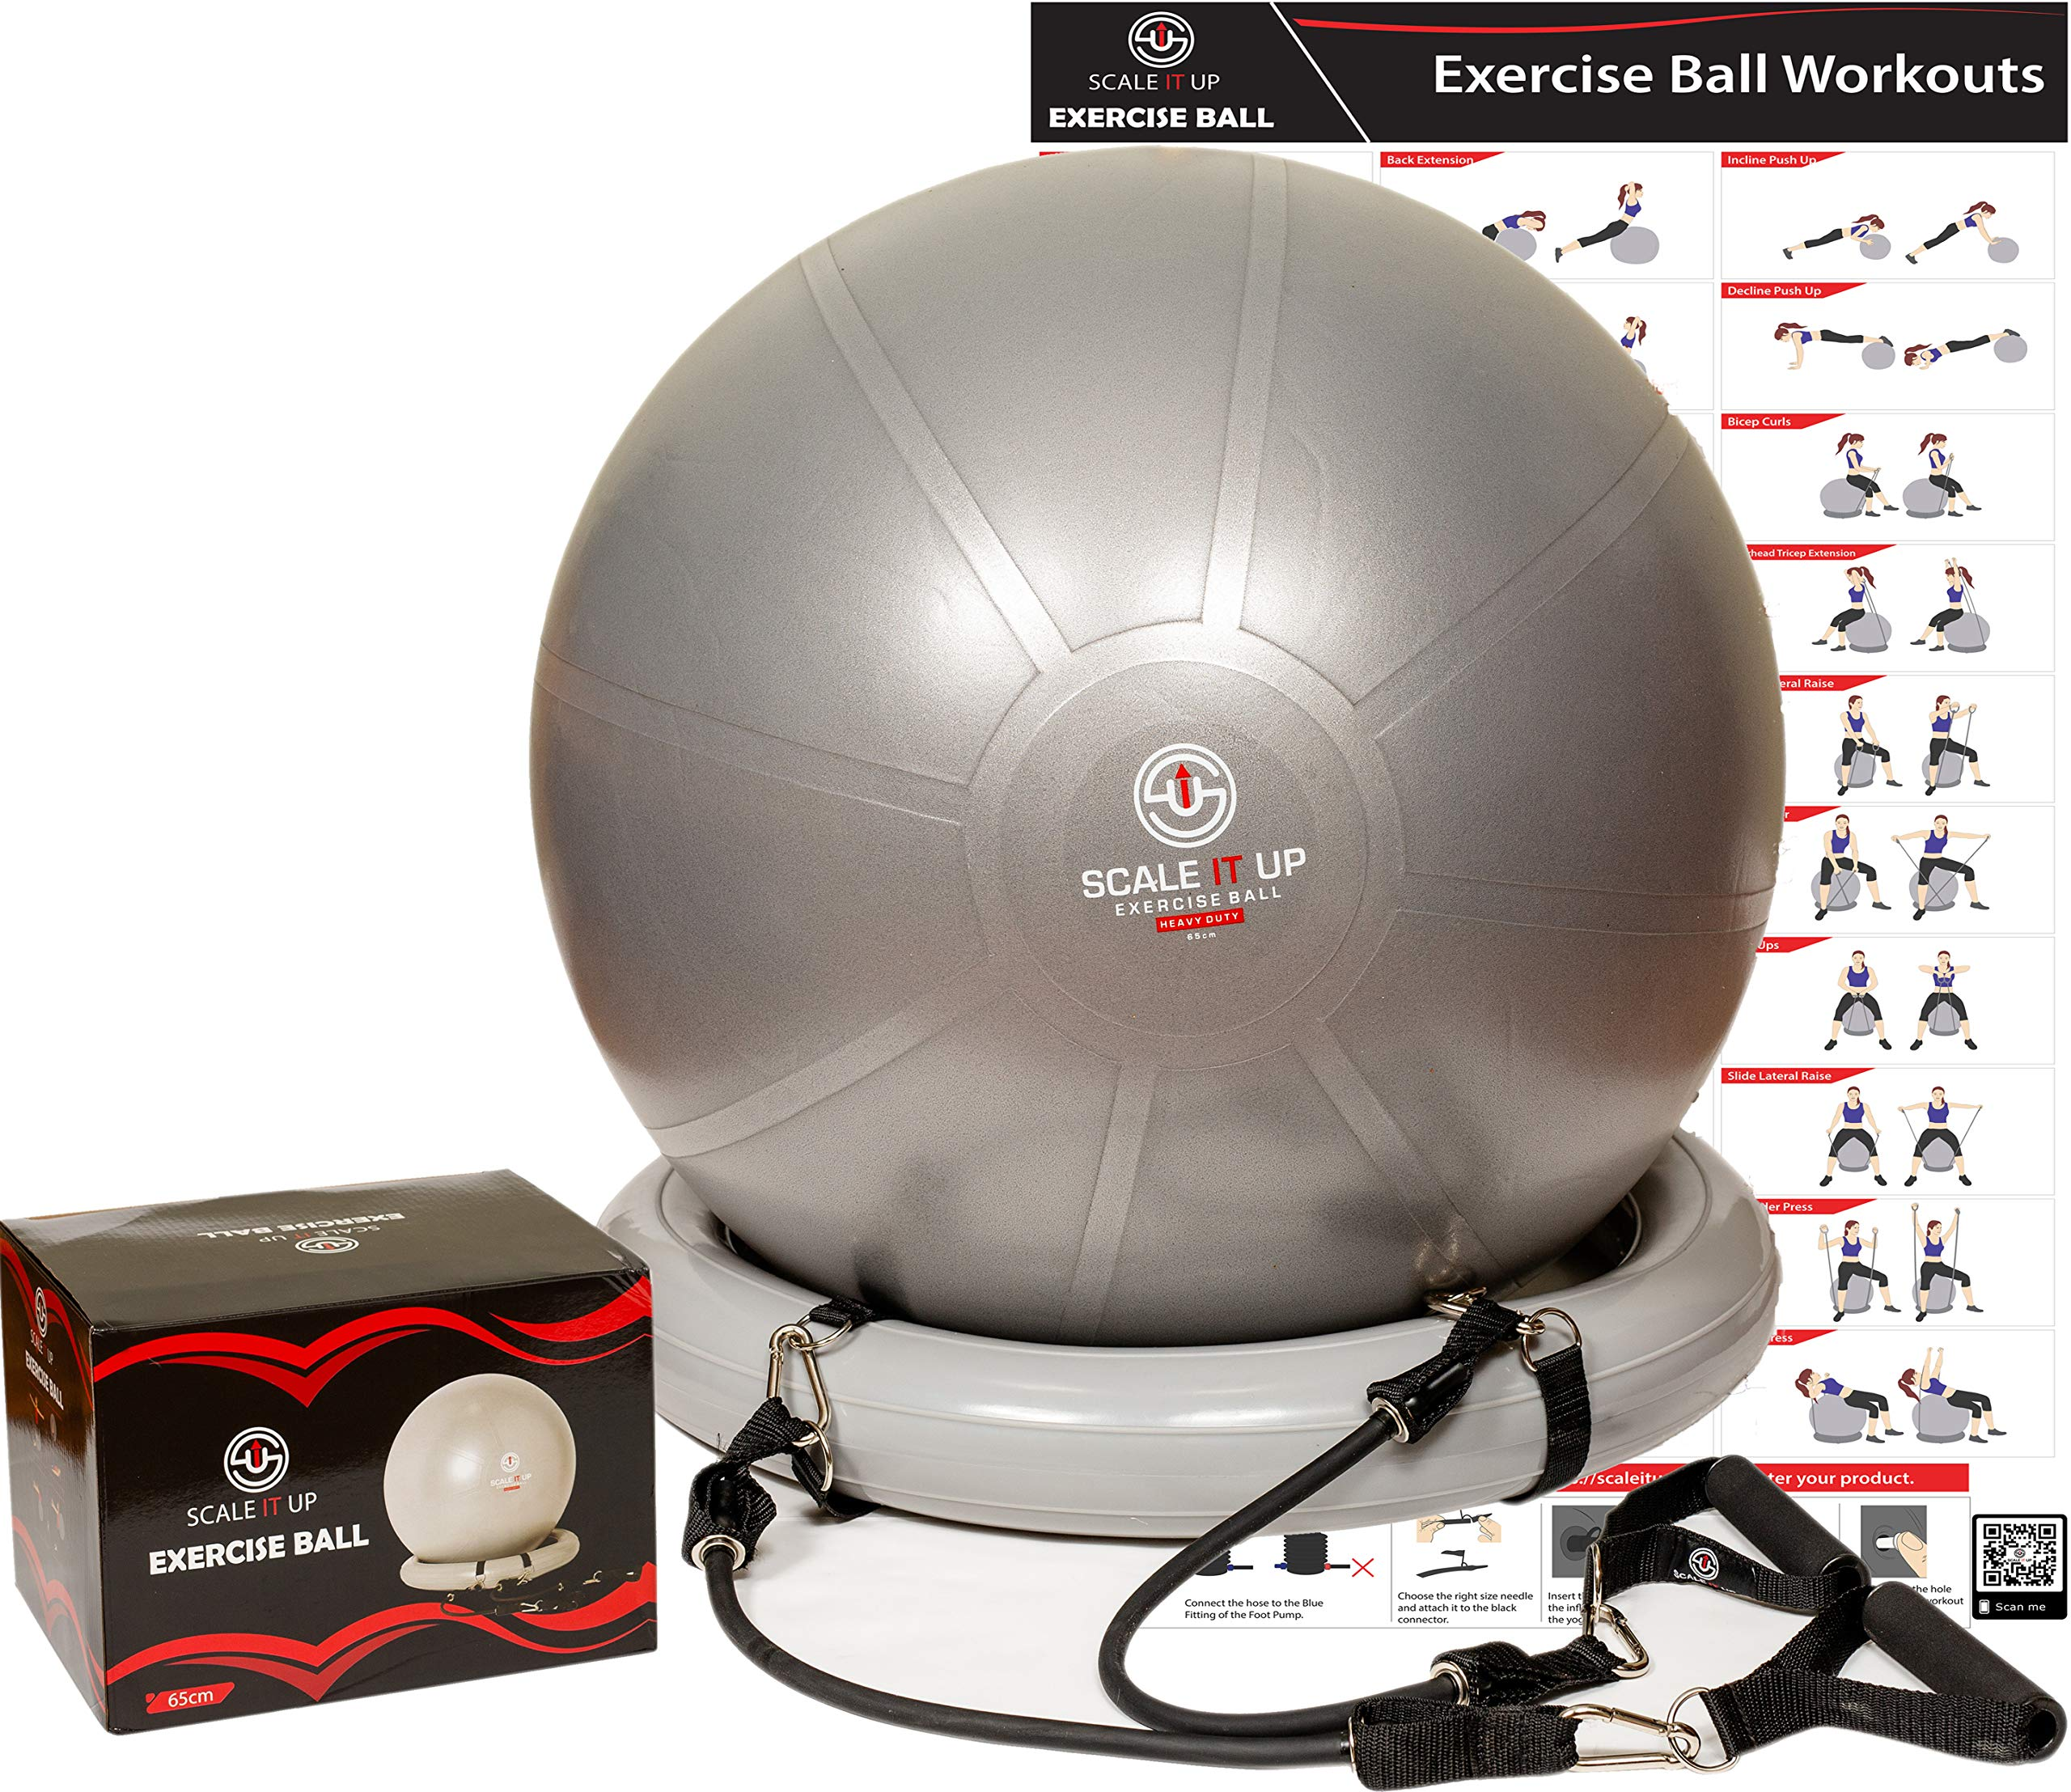 Scale It Up 65cm Exercise Ball Chair with 15LB Resistance Bands Set - Yoga Ball, Fitness Pilates Ball, Stability Ball with Base - Heavy Duty Anti-Slip and Anti-Burst Home Gym Bundle - Supports 600LBs